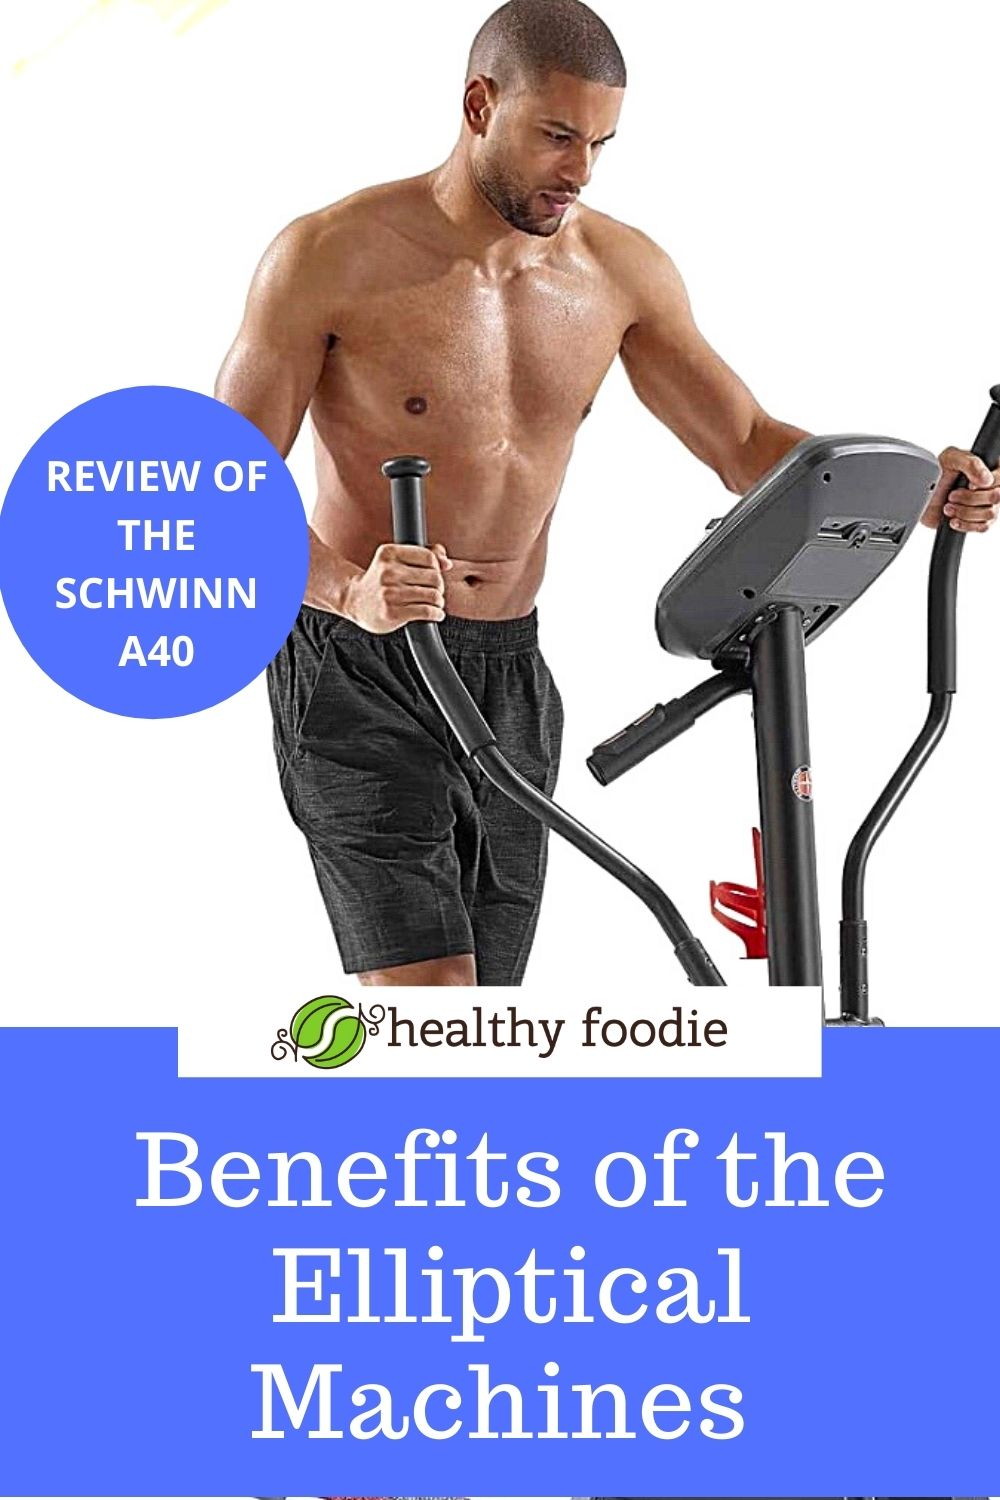 benefits of the elliptical machines